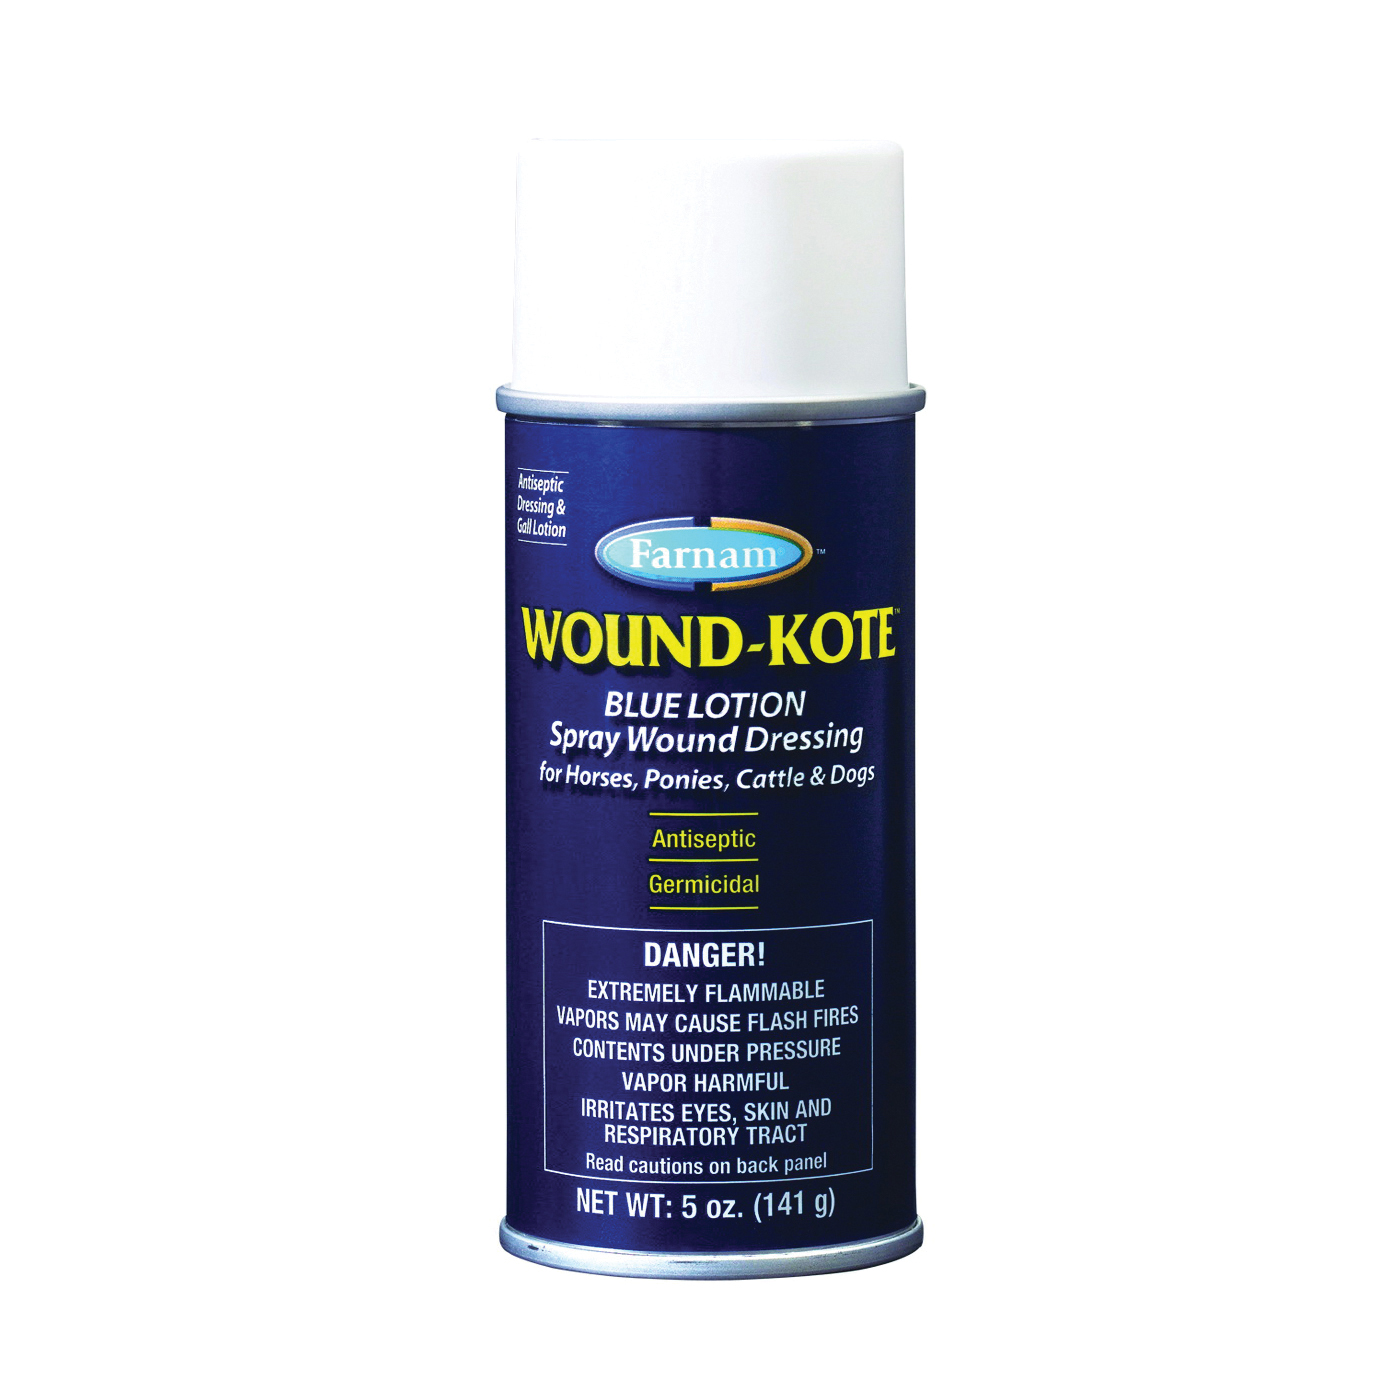 Picture of Farnam Wound-Kote 30401 Lotion Spray Wound Dressing Blue, Lotion, Blue, 5 oz Package